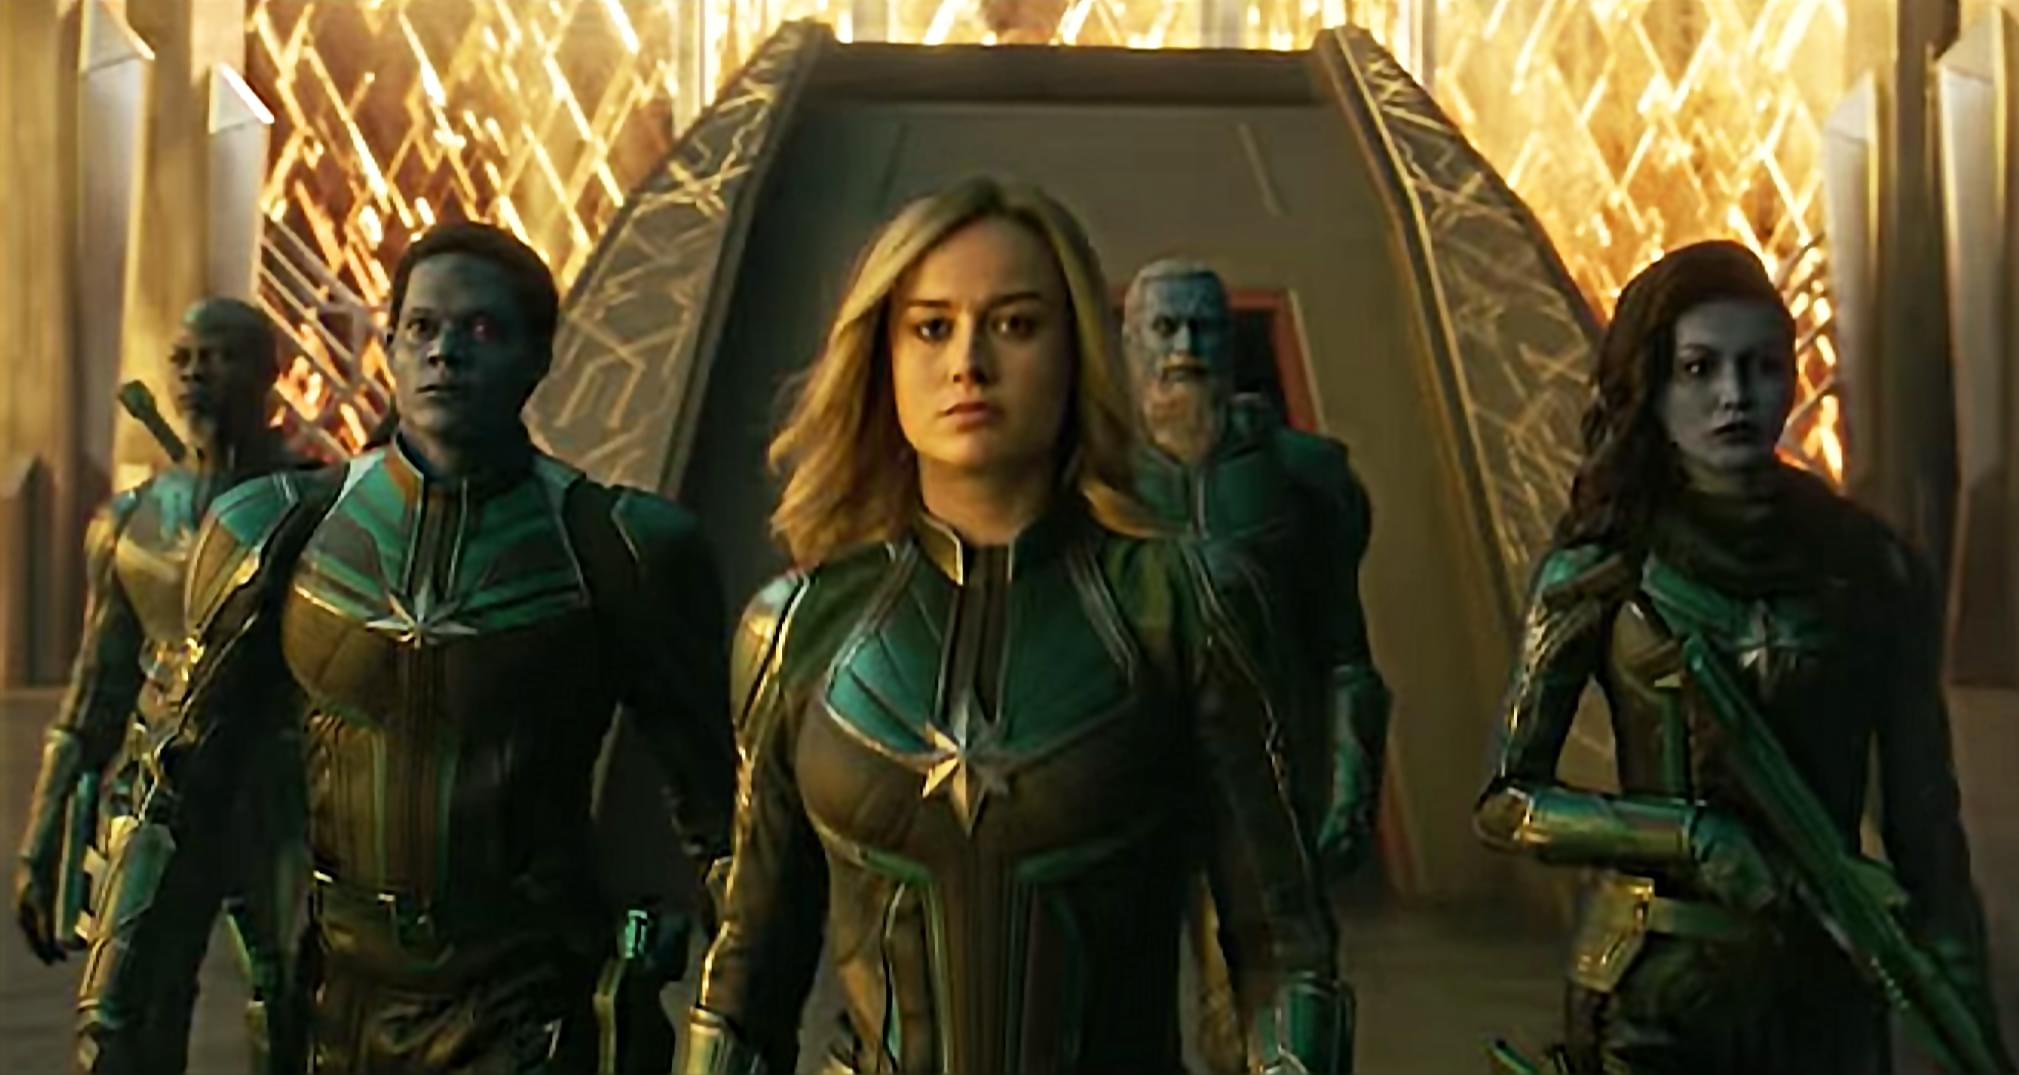 avengers and captain marvel most anticipated movies of 2019   94.7